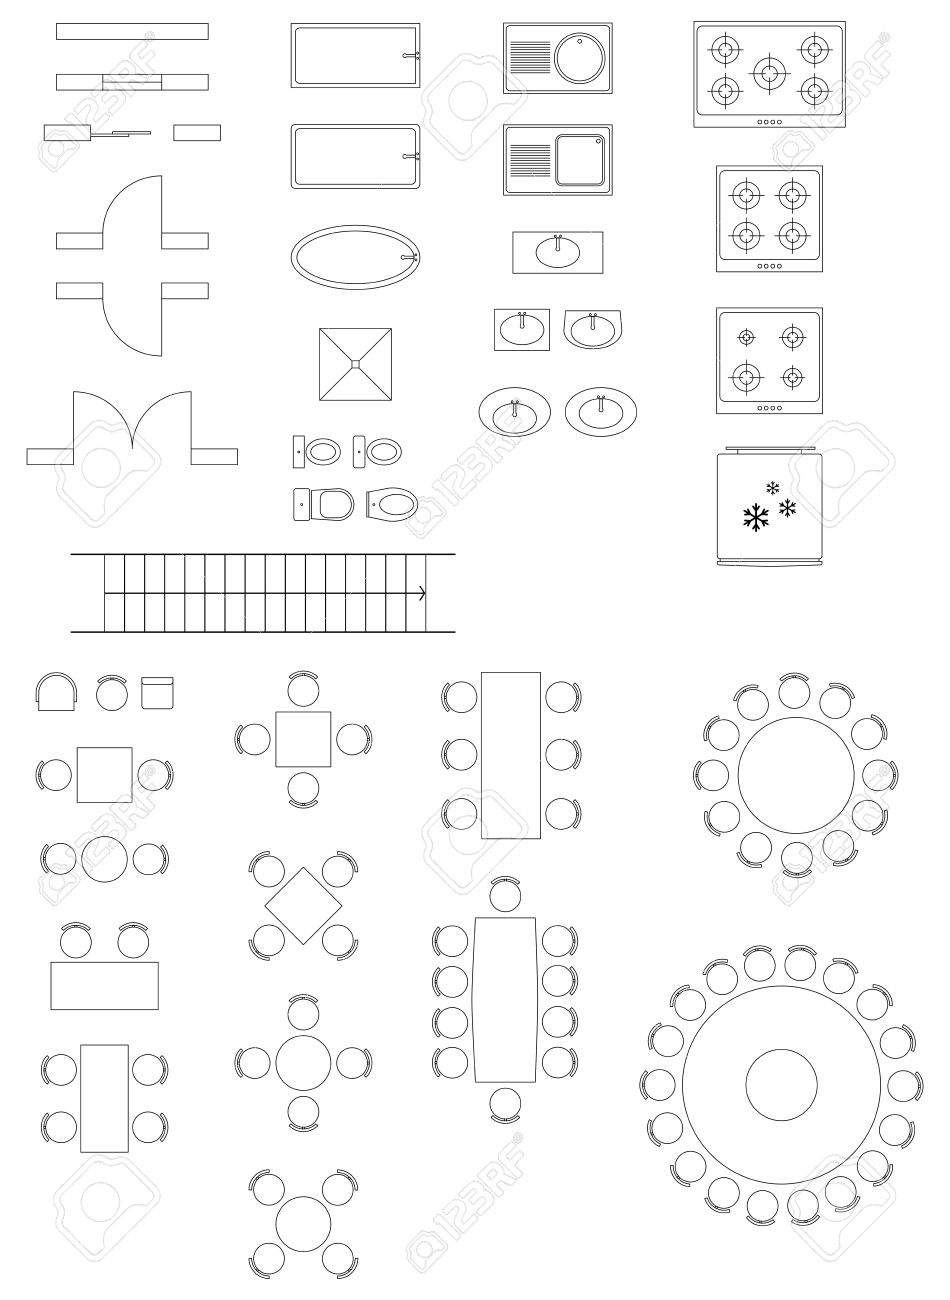 Standard Symbols Used In Architecture Plans Icons Set Royalty Free